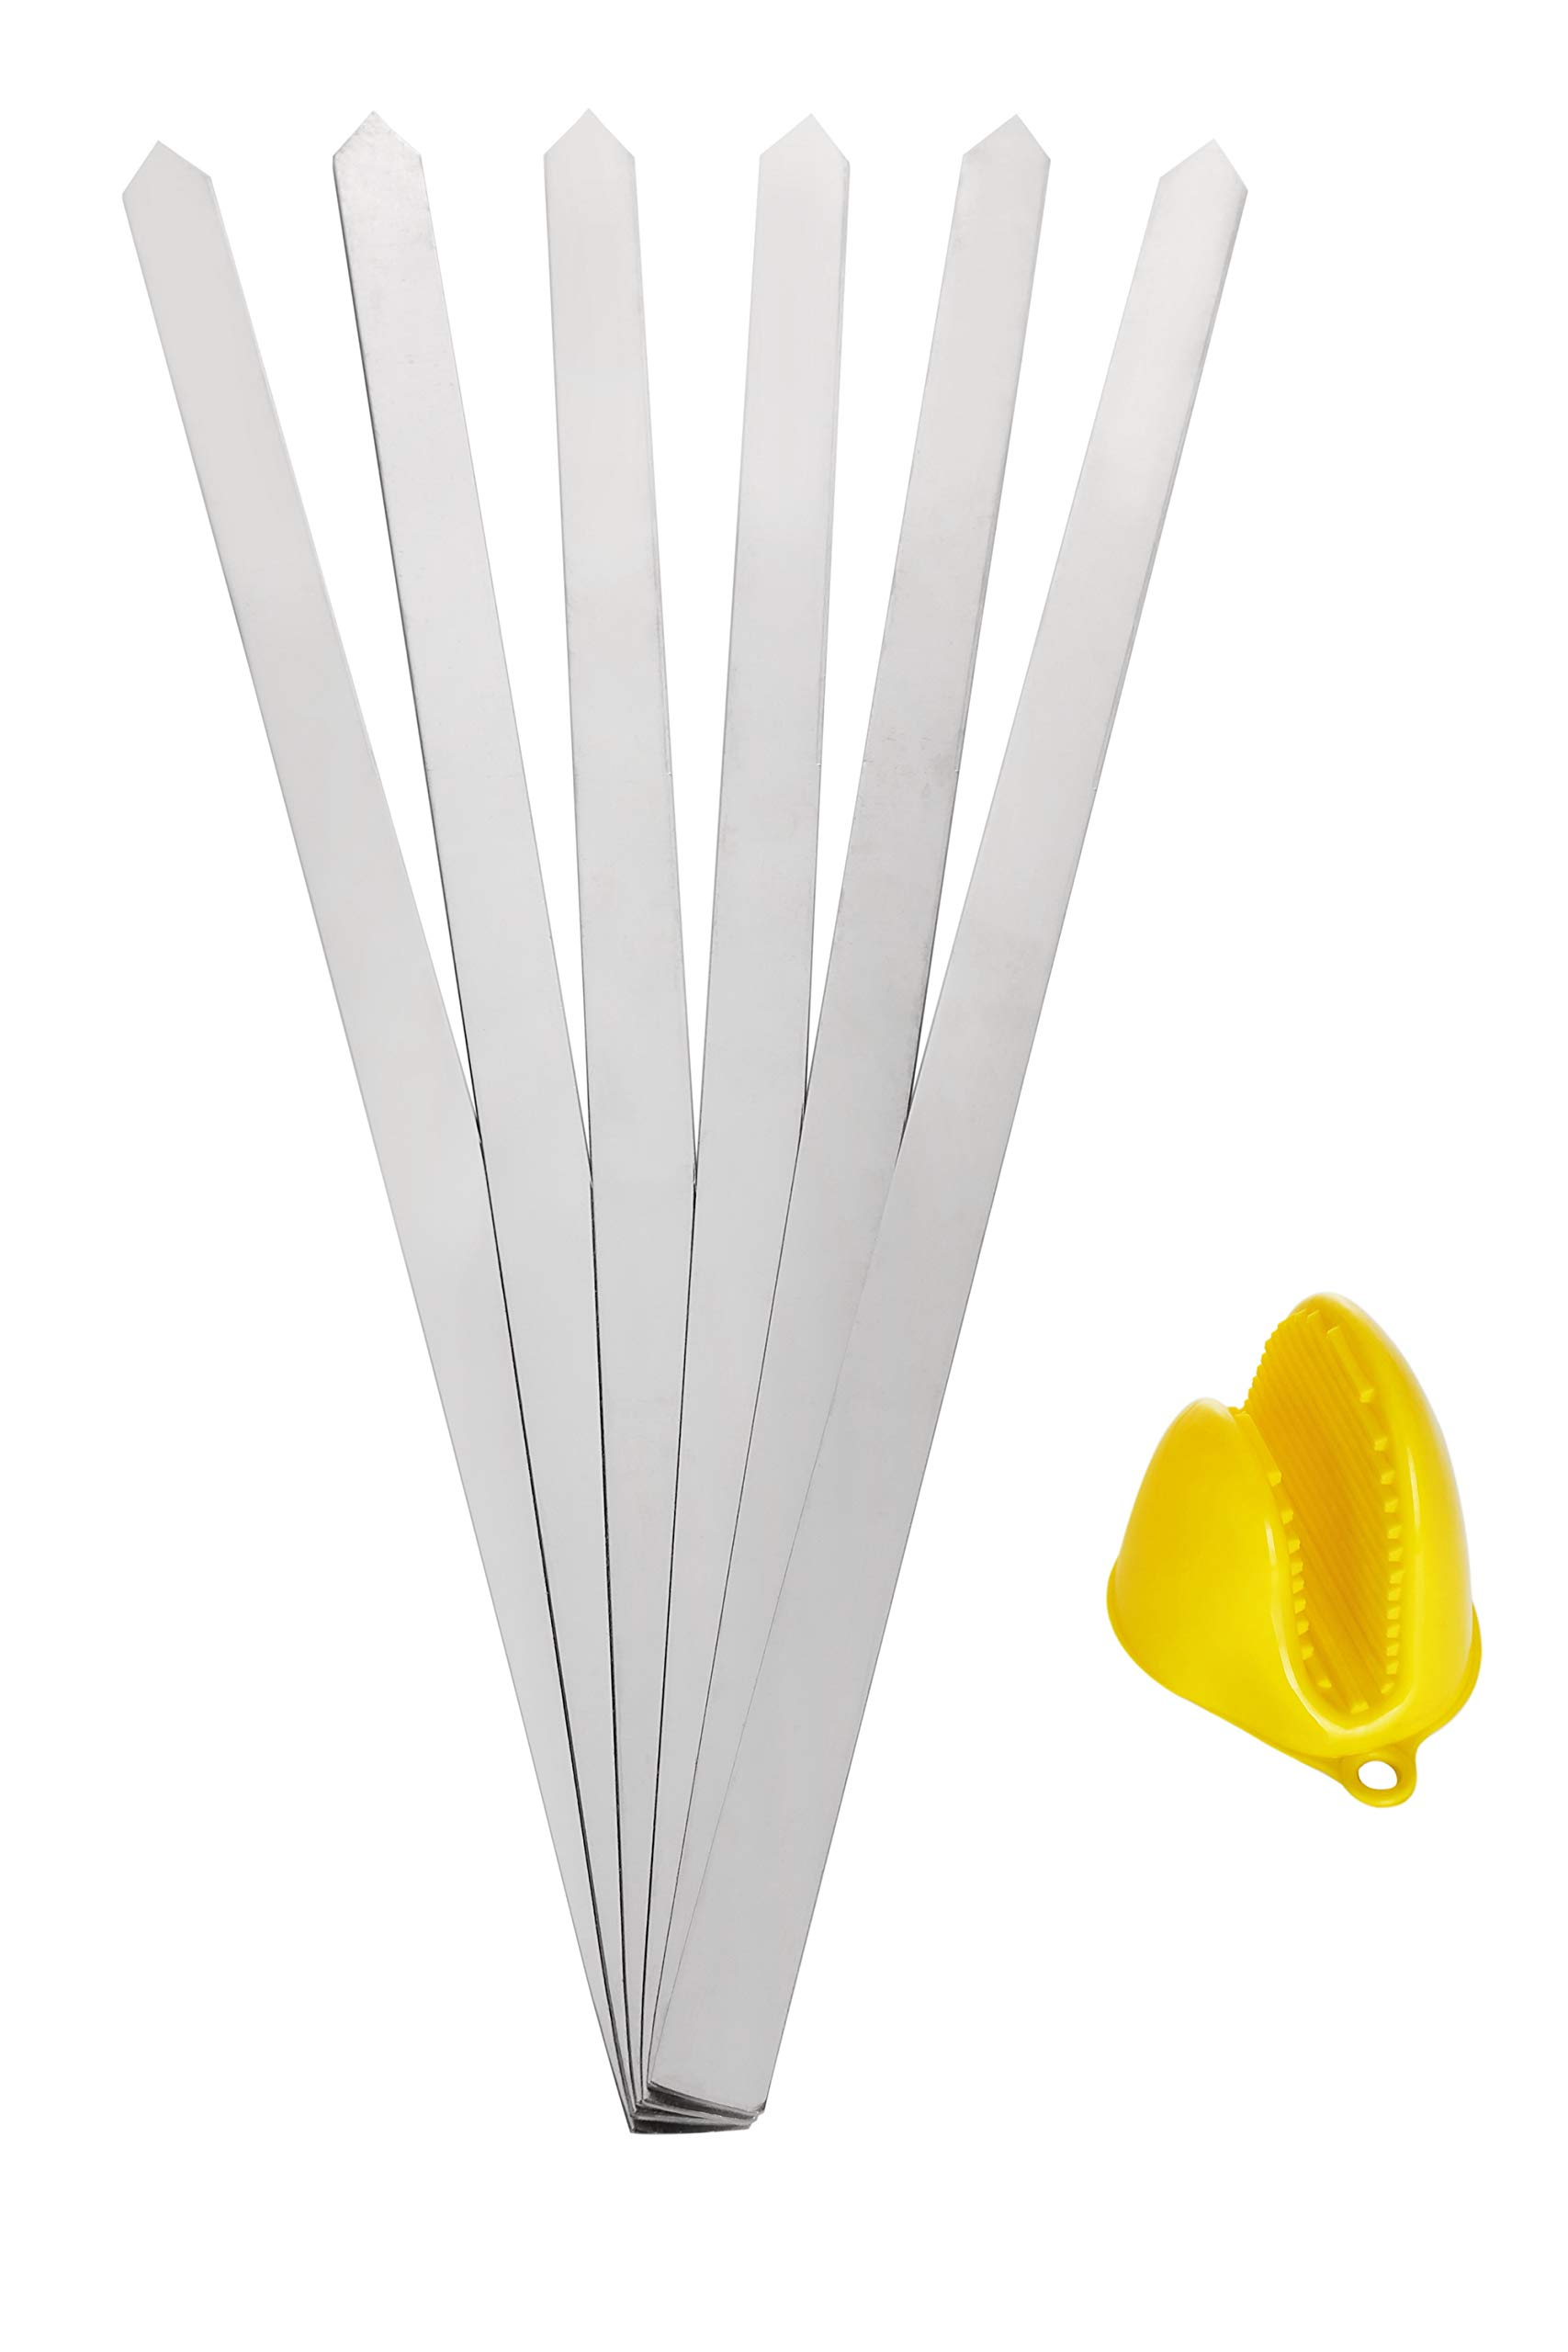 +hom BBQ Kabob Skewers, Long & Wide, Heavy Duty, Stainless Steel, No Wood Handle, Perfect for Koobideh Persian/Brazilian Style, Set of 6 with 1 Mitt